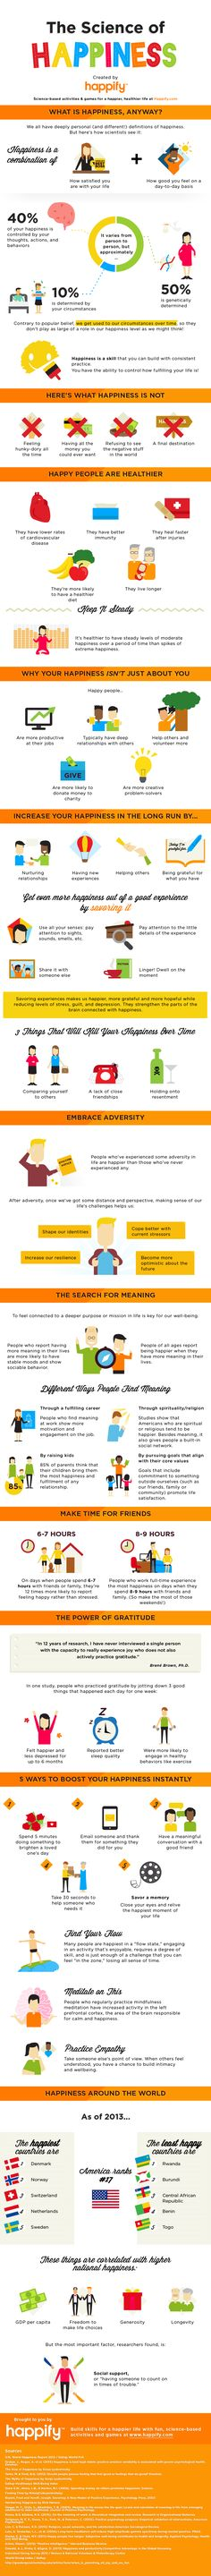 Happify's, The Science of Happiness, has everything you need to know about Happiness in one infographic! Science shows that happiness leads to success (and not the other way around)! Happy people are more creative, more productive at work, and more likely to succeed at school and in their careers. Plus, they bounce back more easily after setbacks, are healthier, and even live longer.